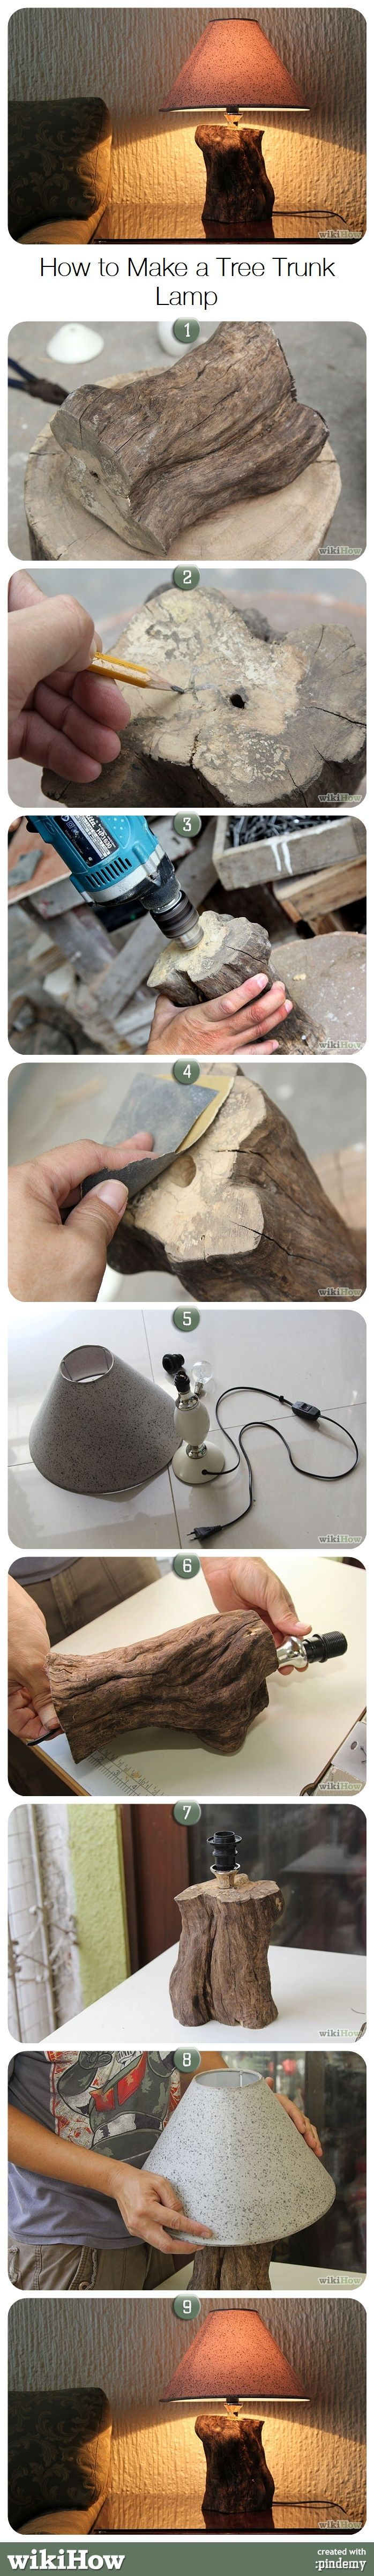 How to Make a Tree Trunk Lamp